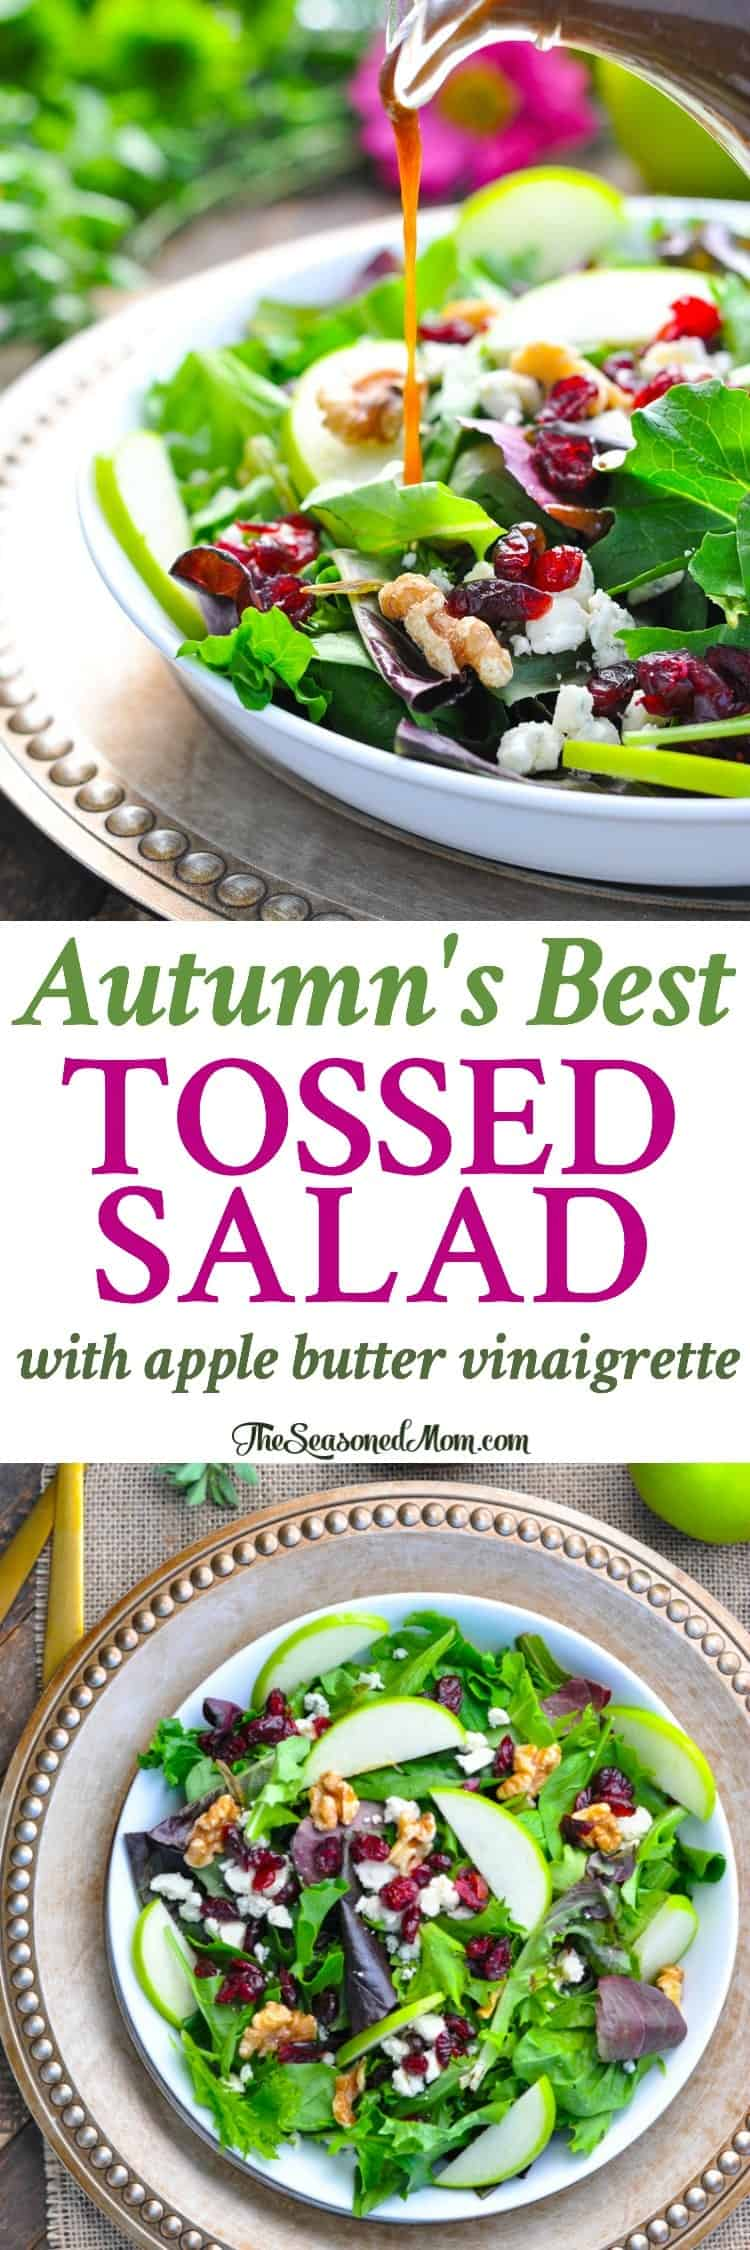 Autumn's Best Tossed Salad with Apple Butter Vinaigrette is a healthy Thanksgiving side dish or an easy weeknight dinner! Thanksgiving Party | Side Dishes | Easy Dinner Recipes | Vegetarian